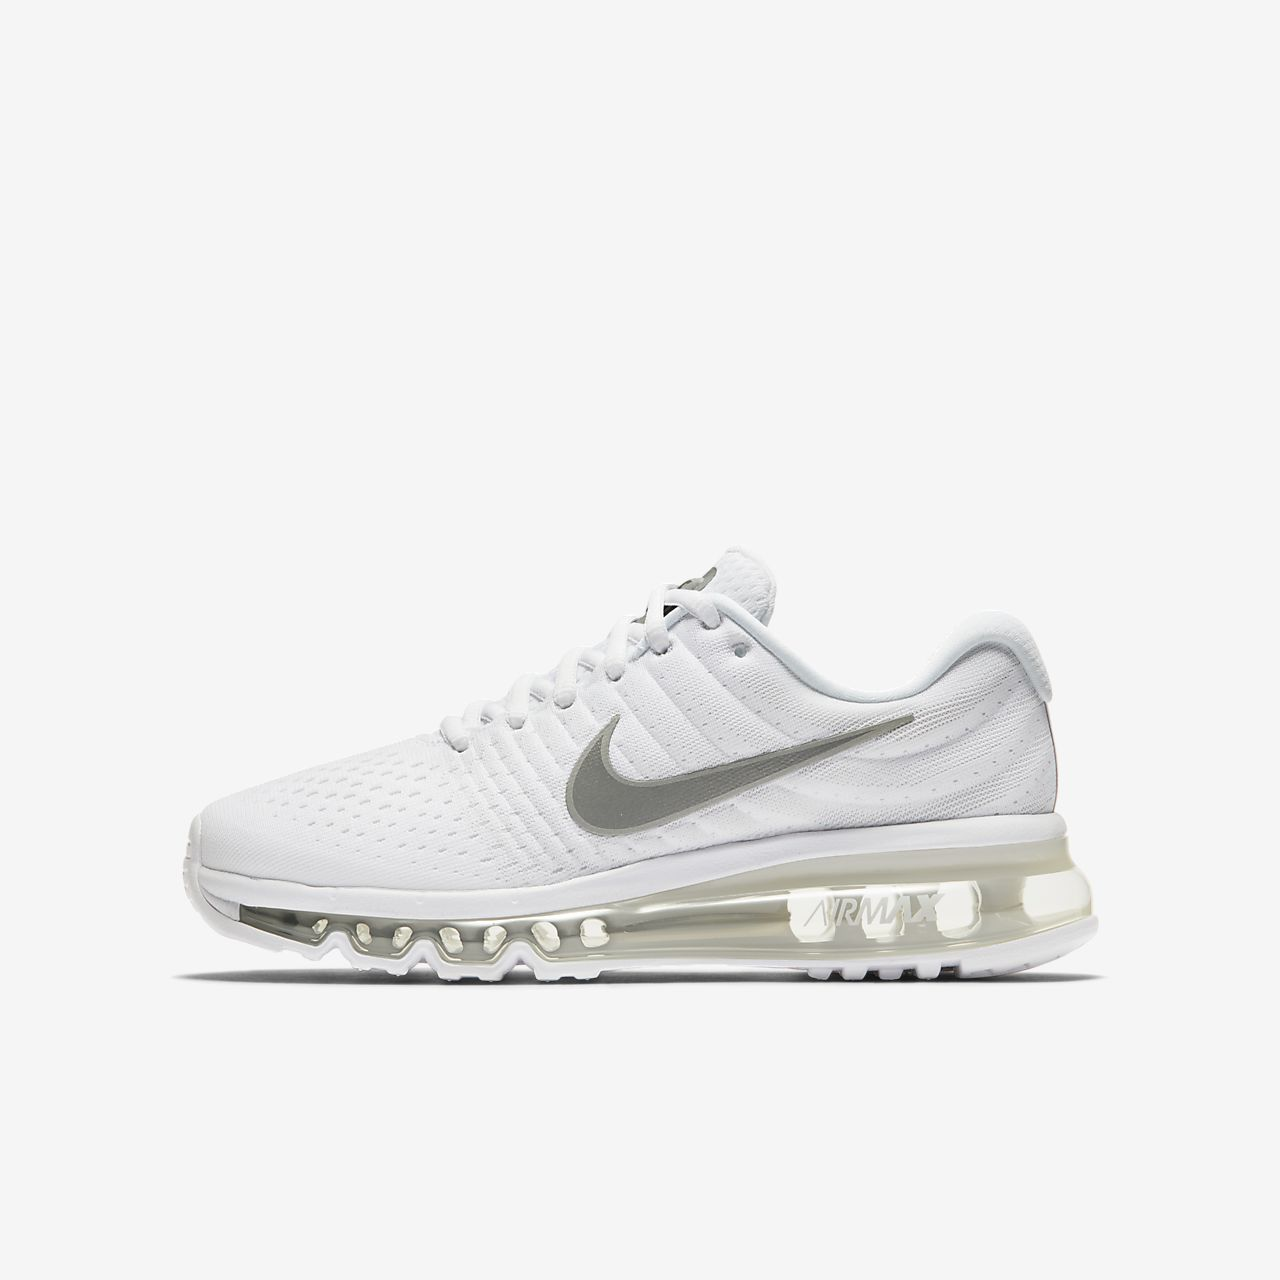 nike air max 2017 kinder weiß